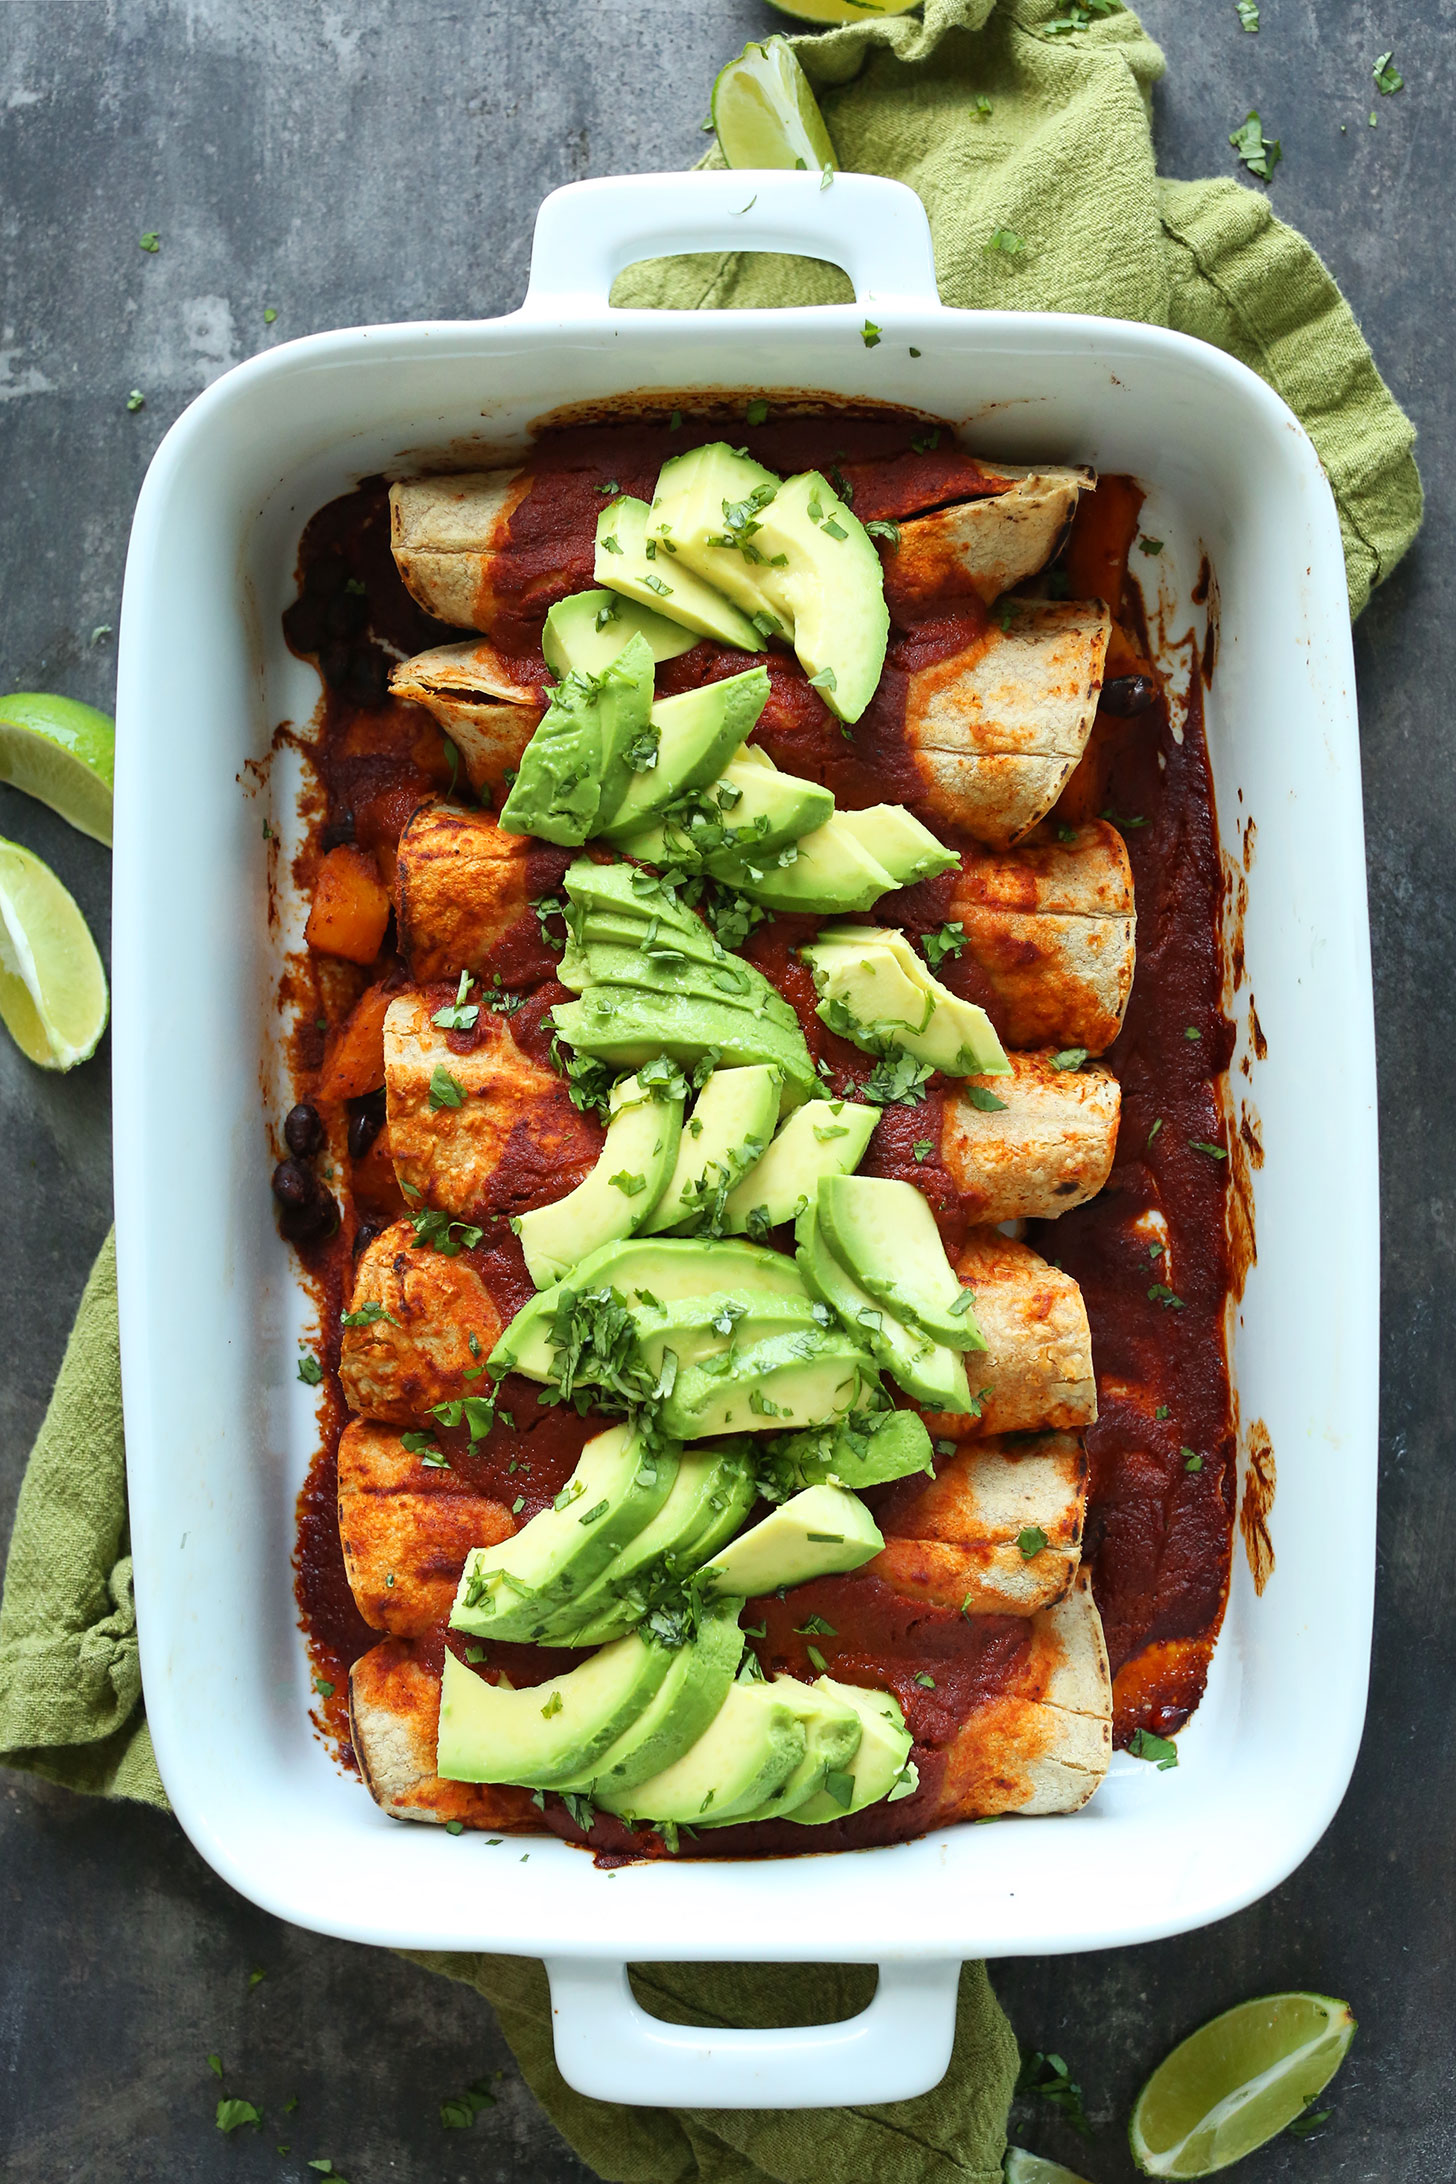 AMAZING 10 Ingredient Butternut Squash Enchiladas Simple Methods And Ingredients Results